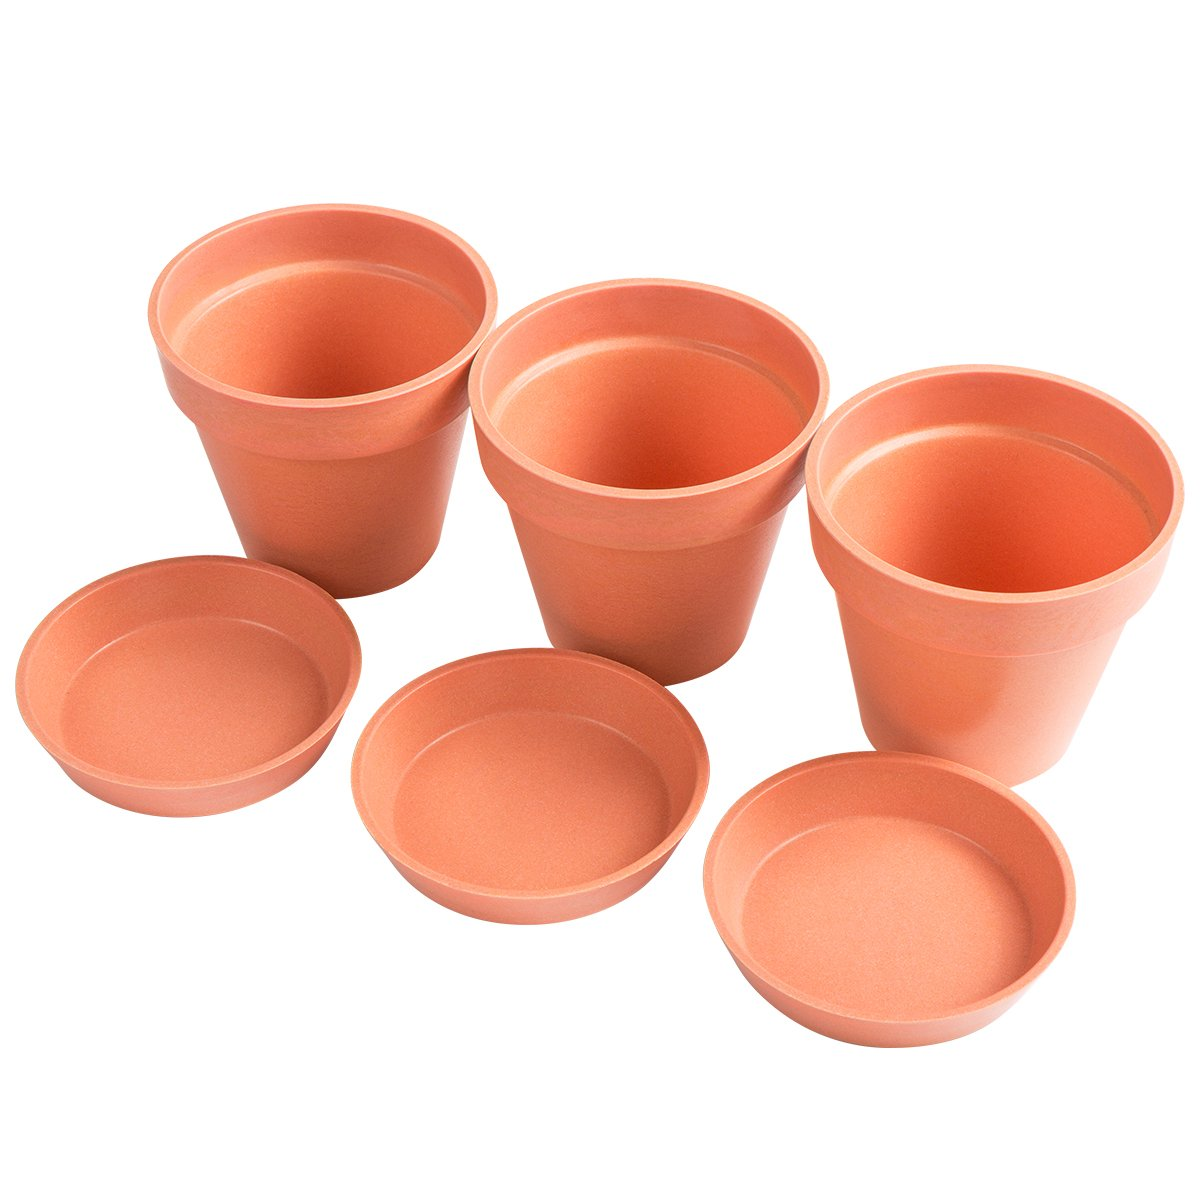 ARTALL 3 Pack,5 Inch Biodegradable Round Nursery Flower Pots Starter Kit for Seed Planter, Eco-Friendly and Organic, Orange